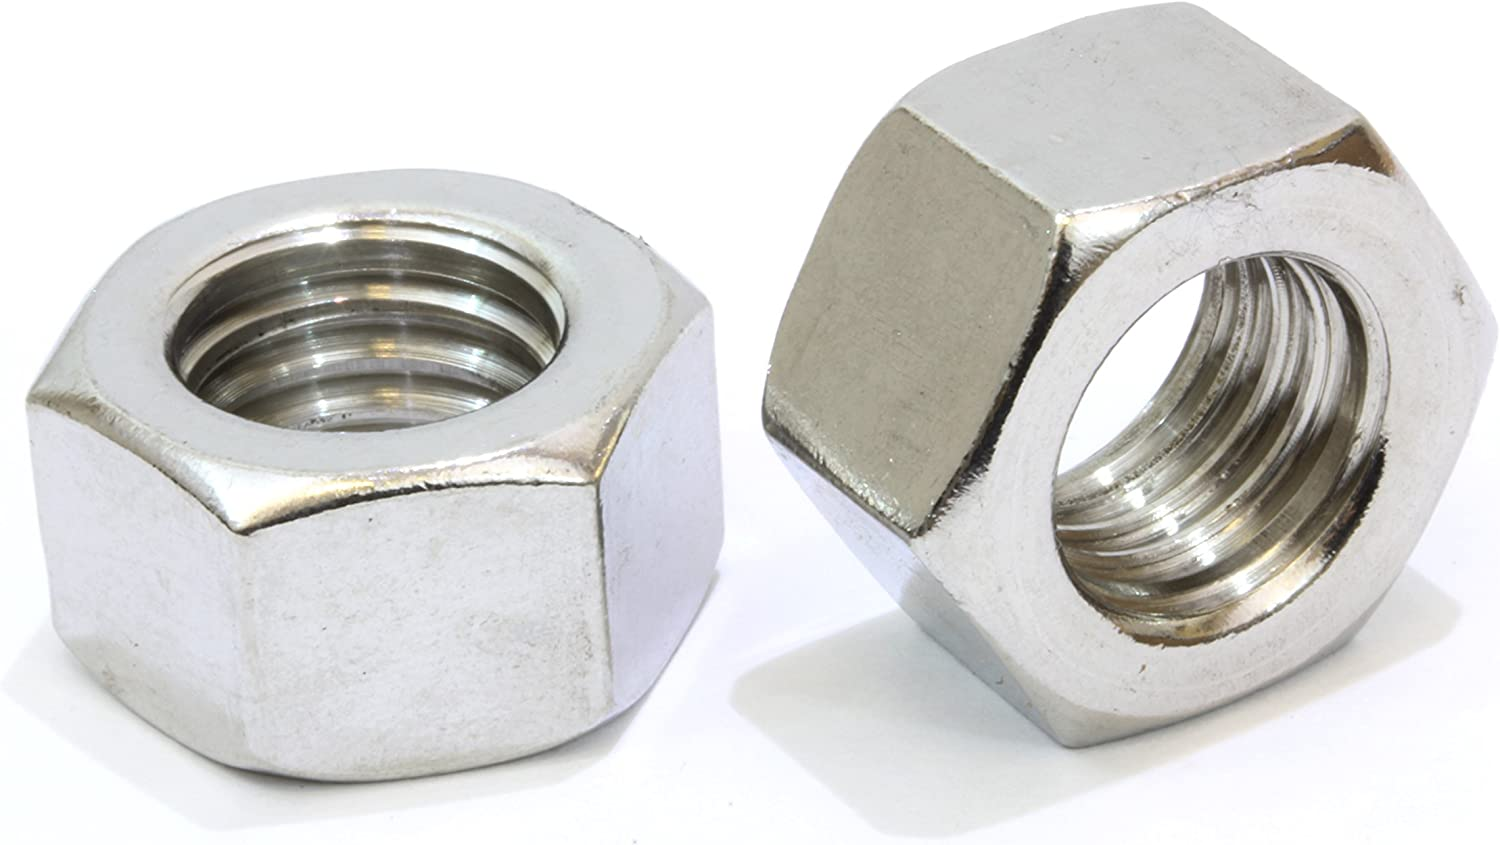 5//8 x 1-1//2 OD NL-19 Finish 18-8 Stainless Steel Flat Washers R 50 pk.